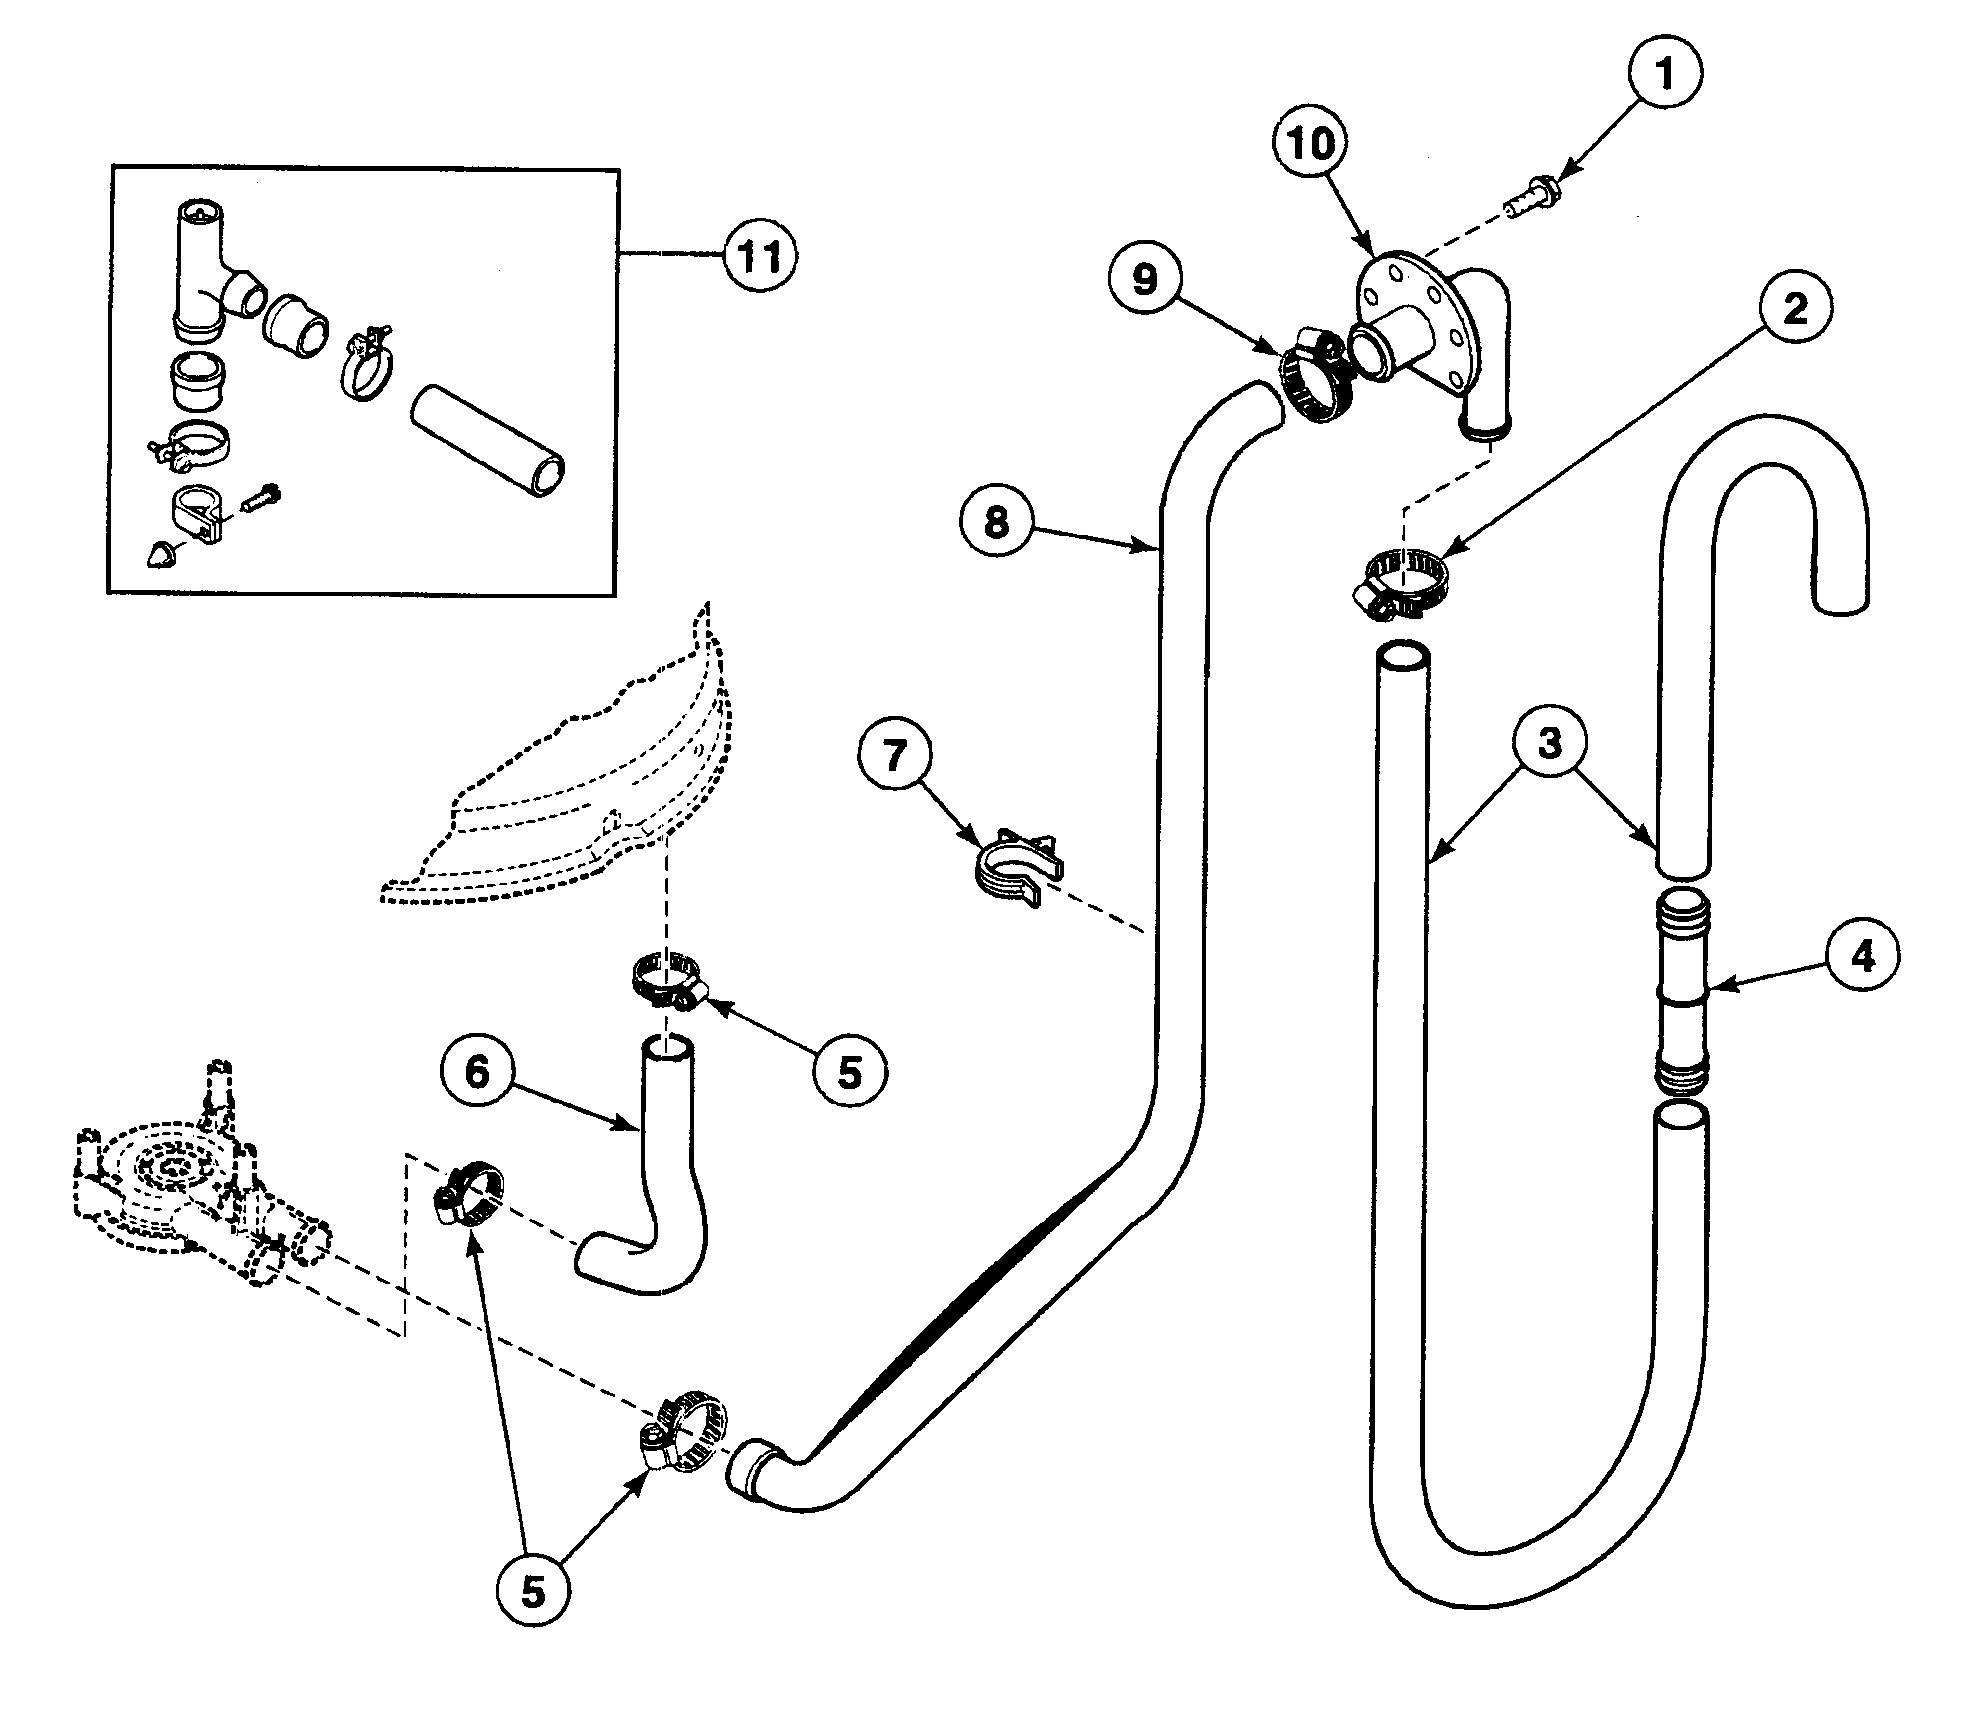 DRAIN HOSES Diagram & Parts List for Model swt110wm Speed